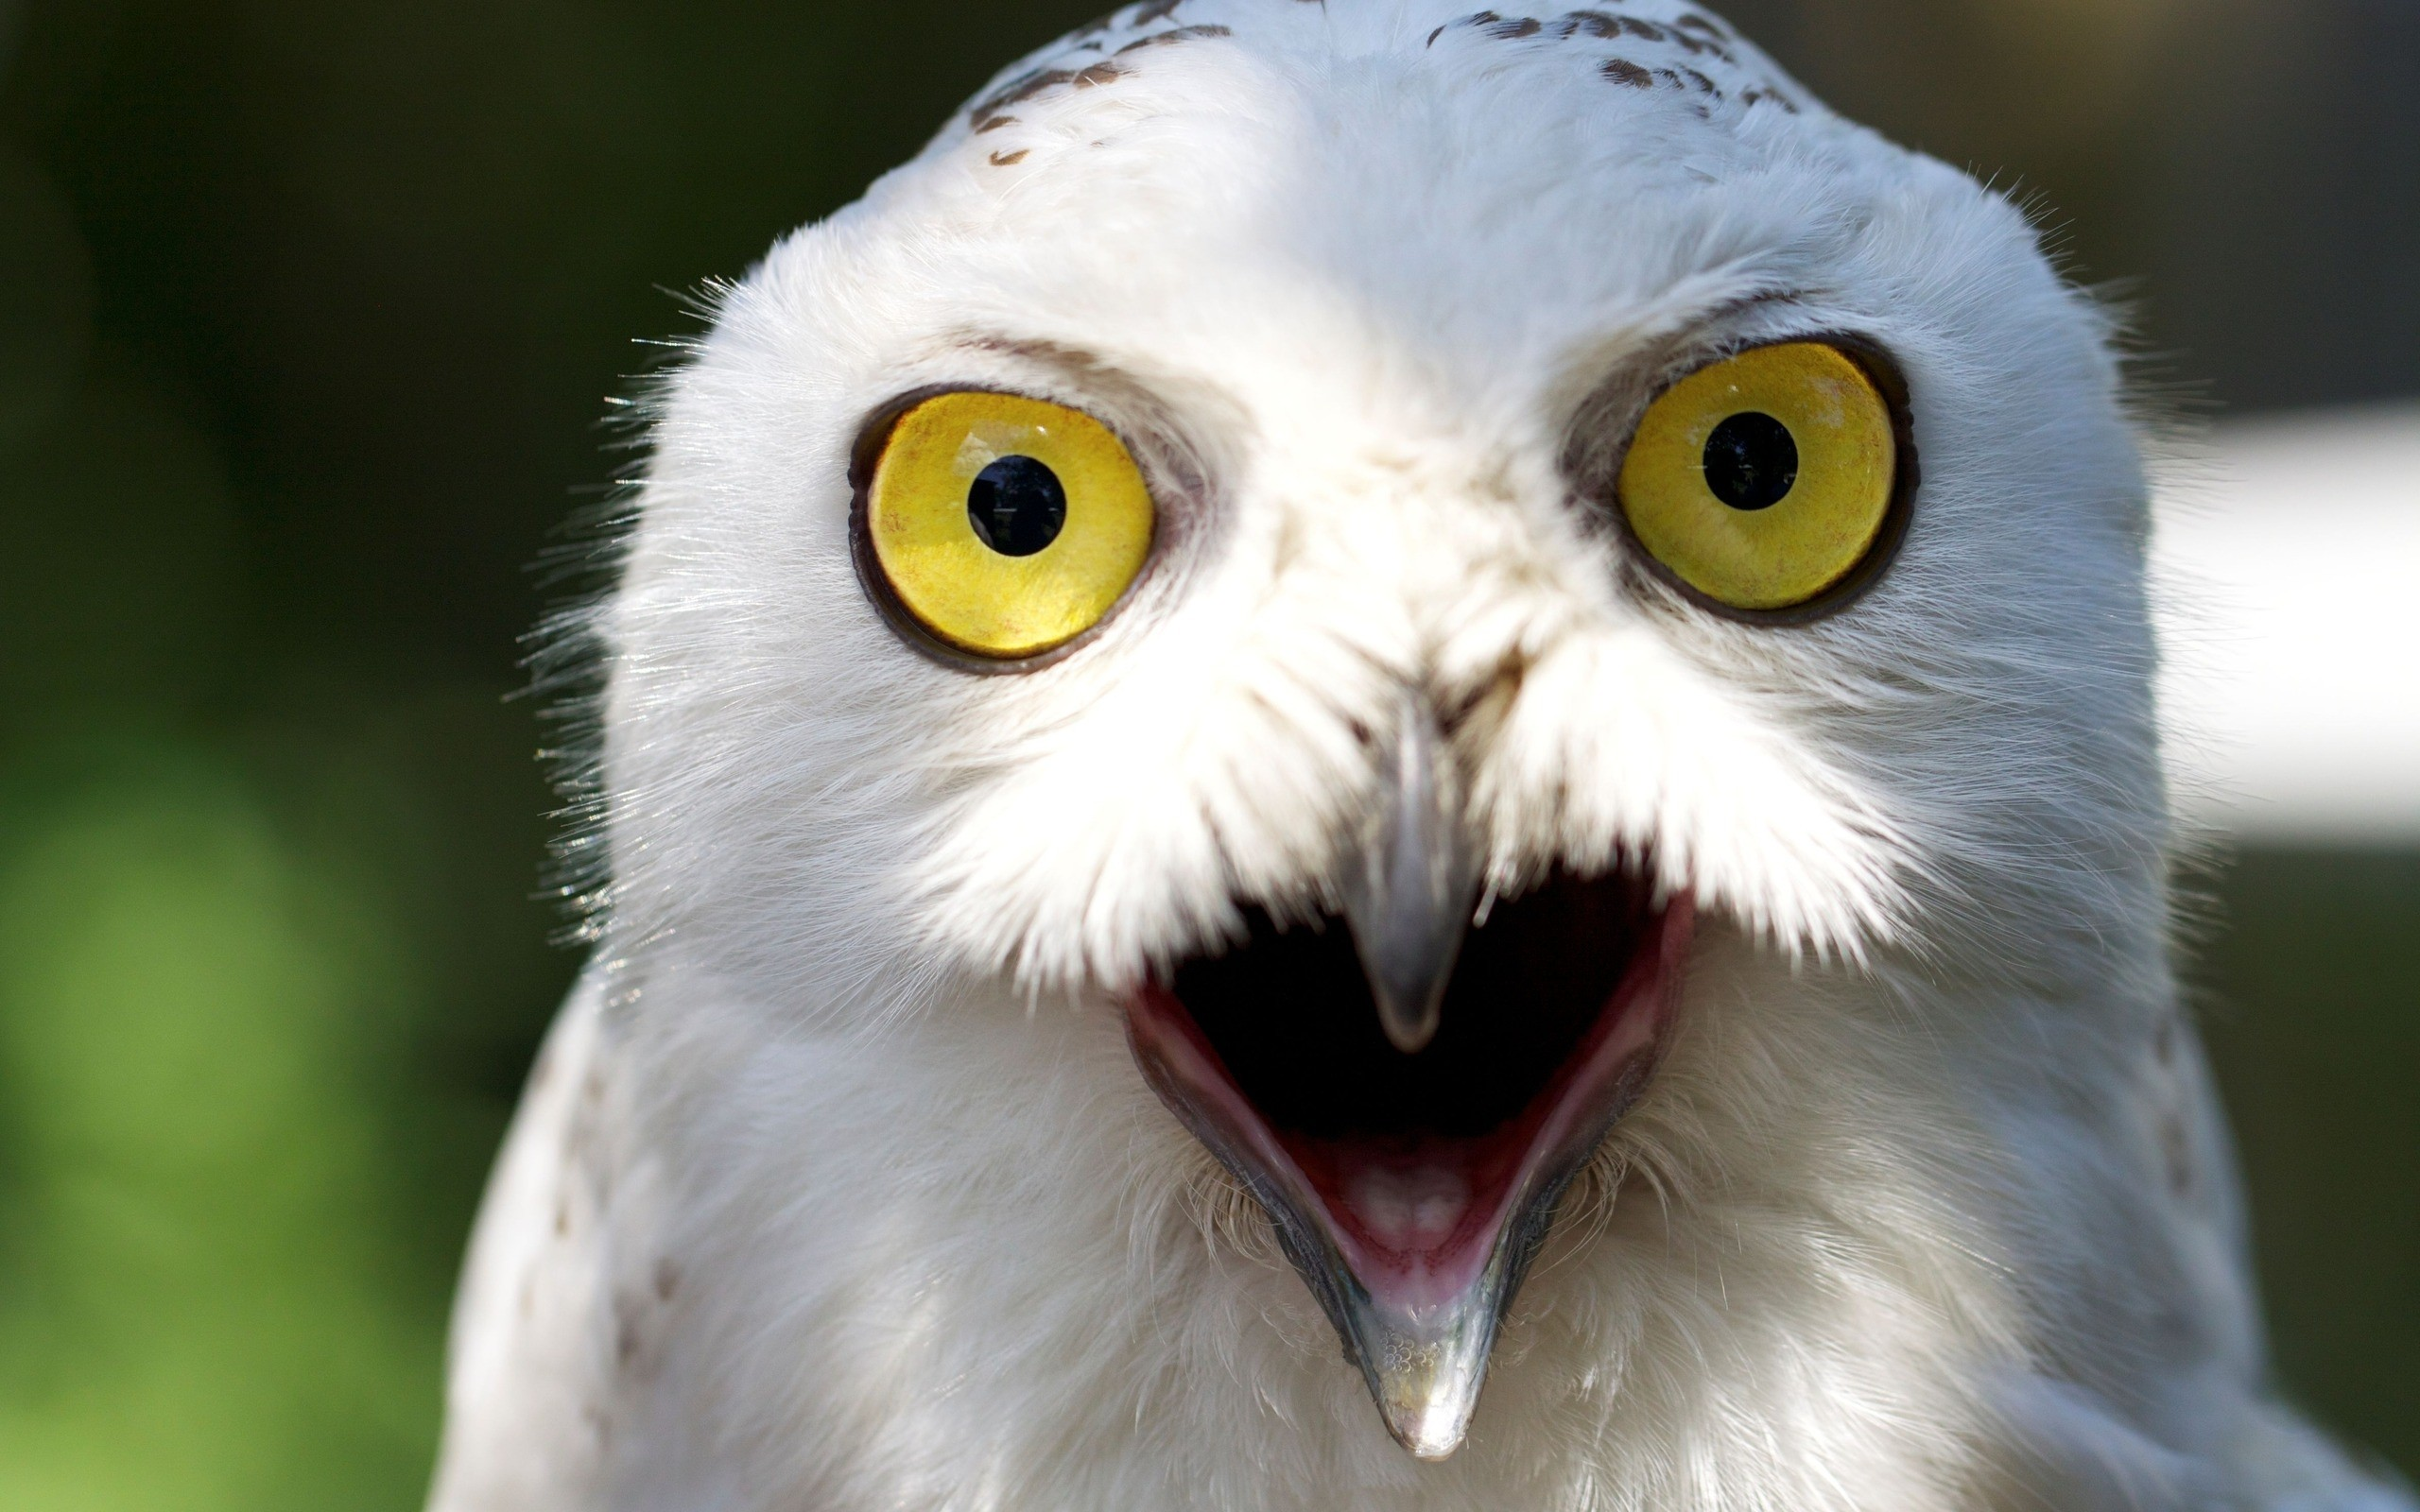 Res: 2560x1600, White owl wallpapers and images wallpapers, pictures, photos